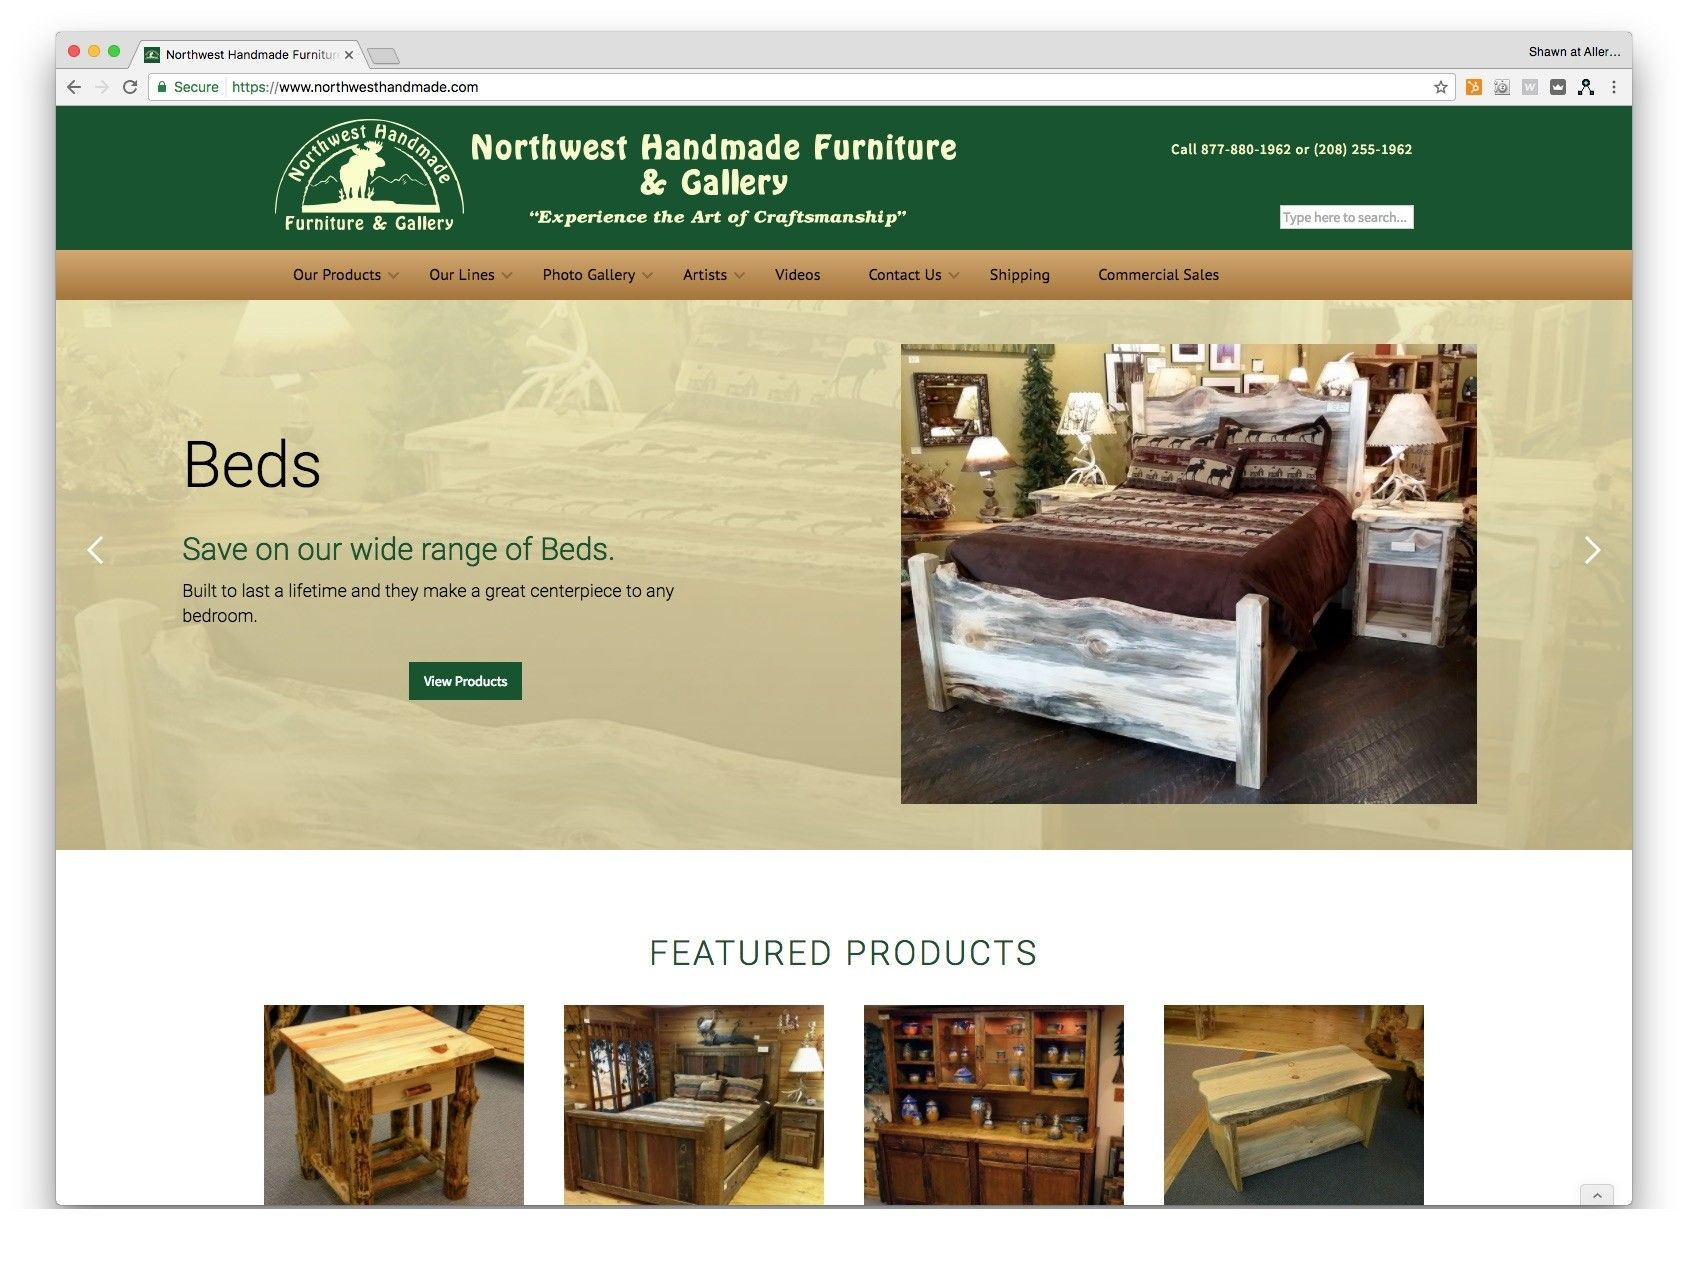 We redesigned northwesthandmade.com to improve SEO and make it responsive so that it can be viewed on all devices. The site utilizes the pixelcactus platform thus making future edits more manageable and time-cost effective. There is an added bonus feature that showcases artisans in their store on 1st Avenue in Sandpoint, Idaho